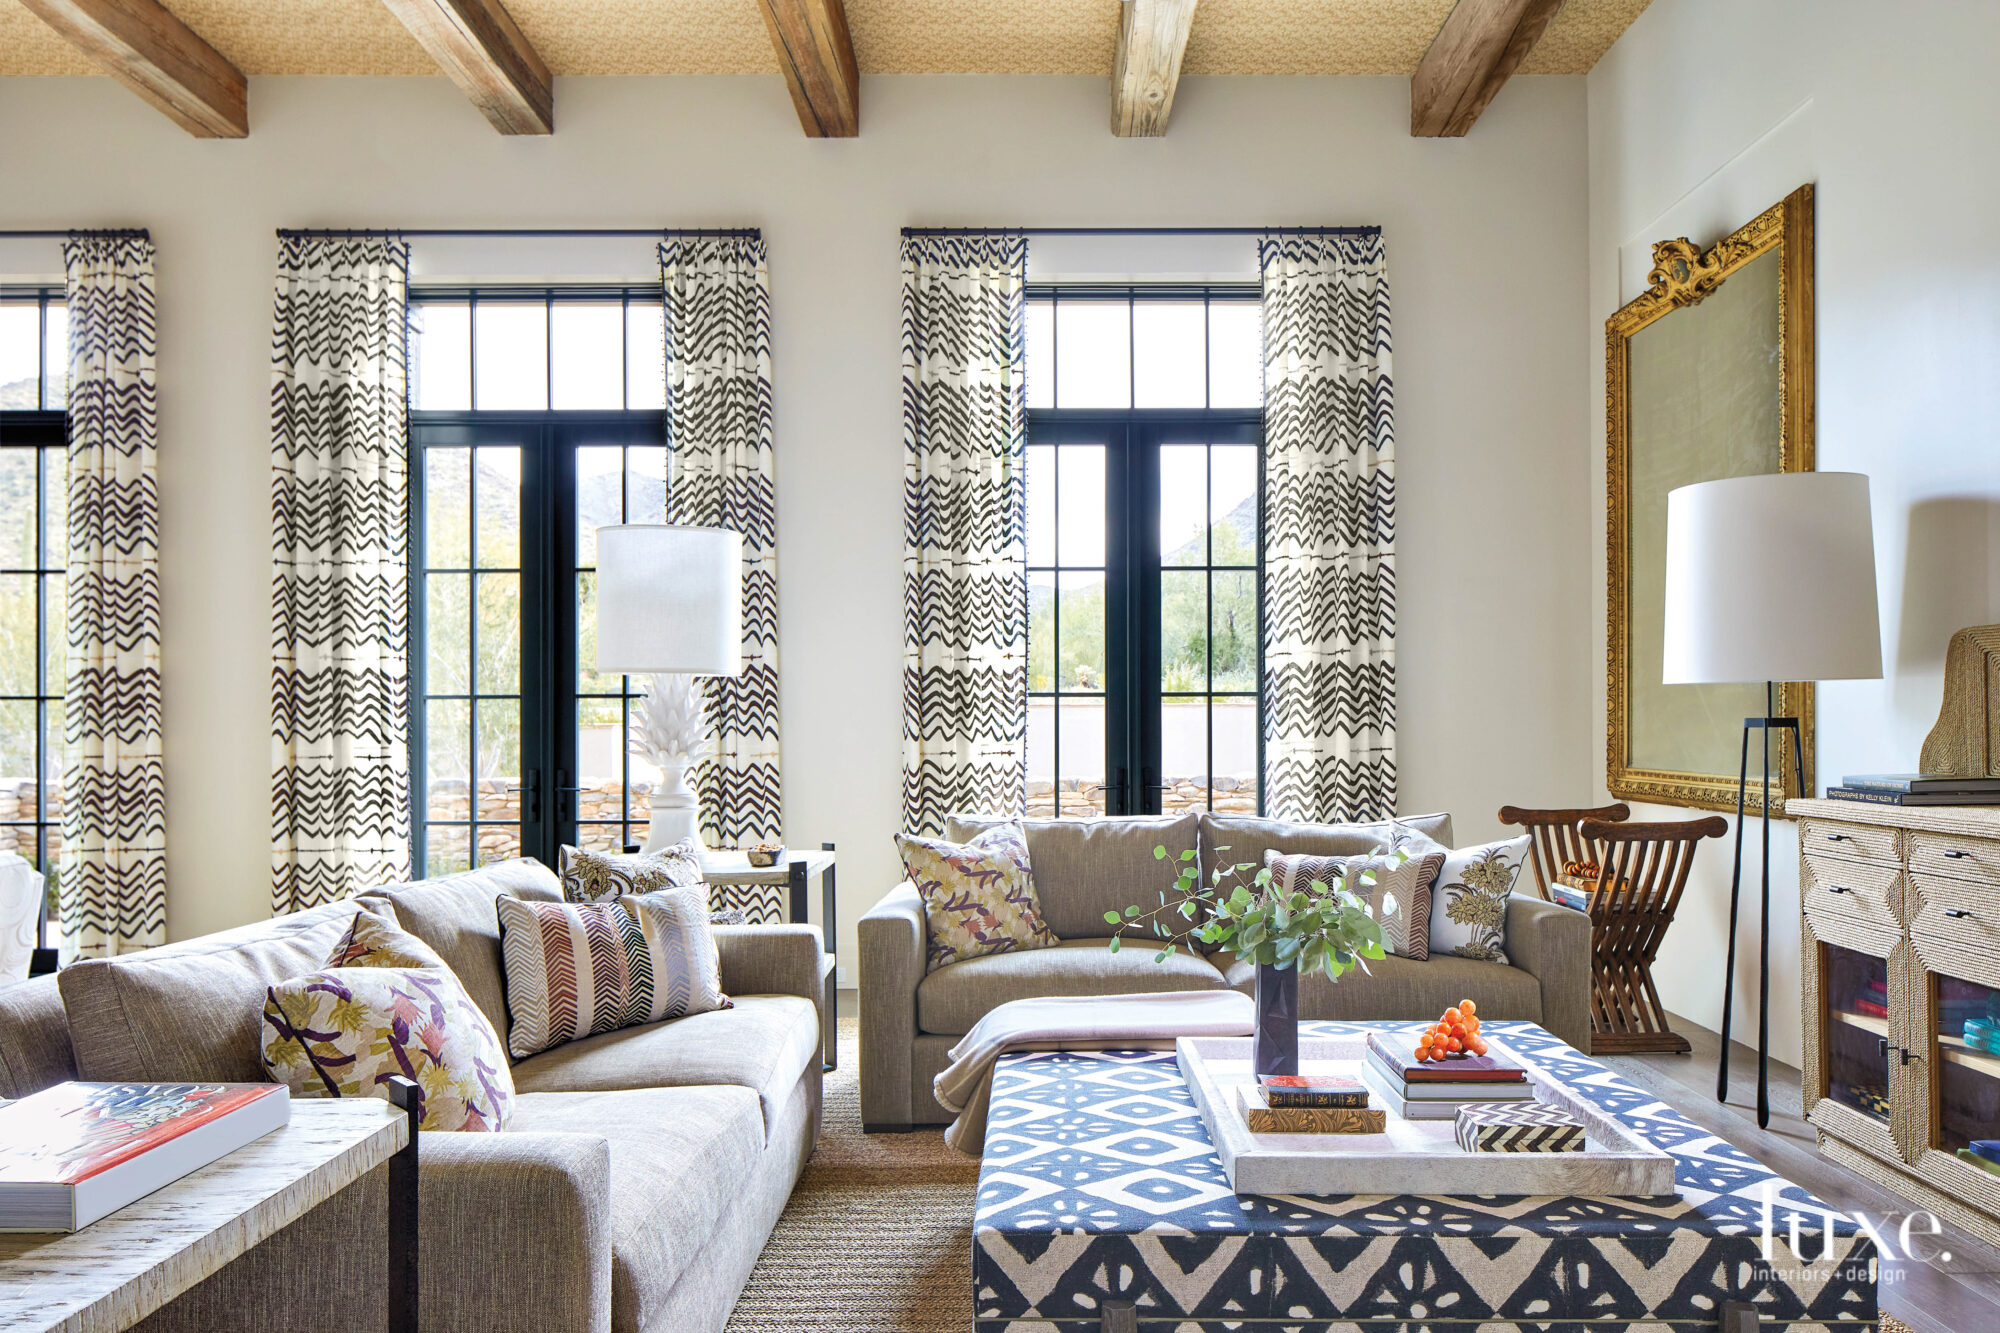 Patterned curtains frame the living...